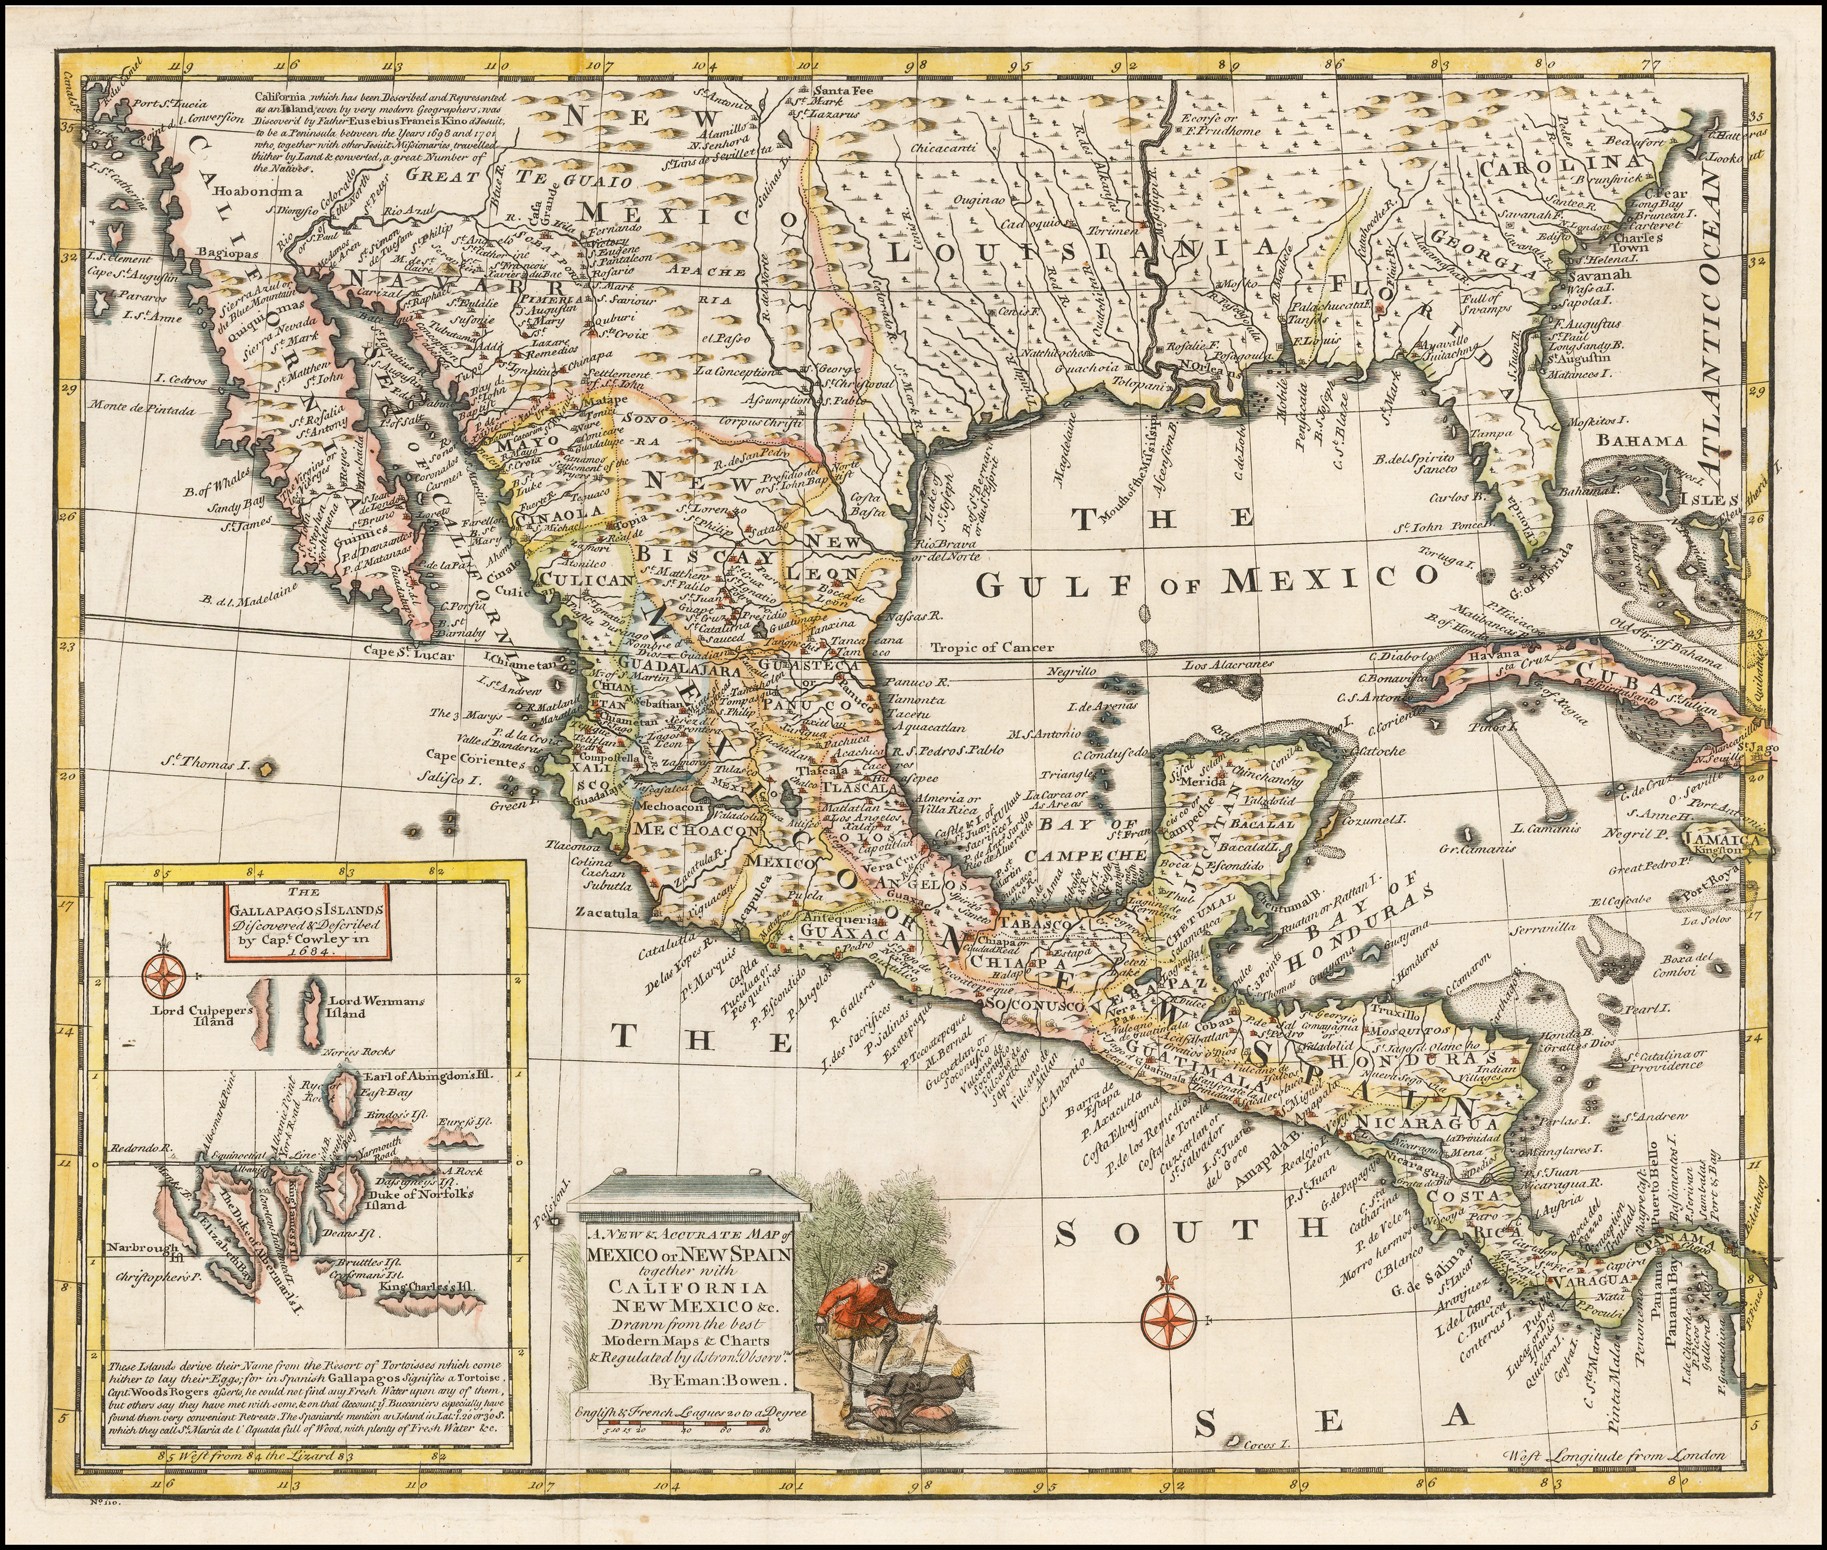 A New & Accurate Map of Mexico or New Spain together with California New Mexico &c. [Inset map of the Galapagos Islands] - Barry Lawrence Ruderman ...